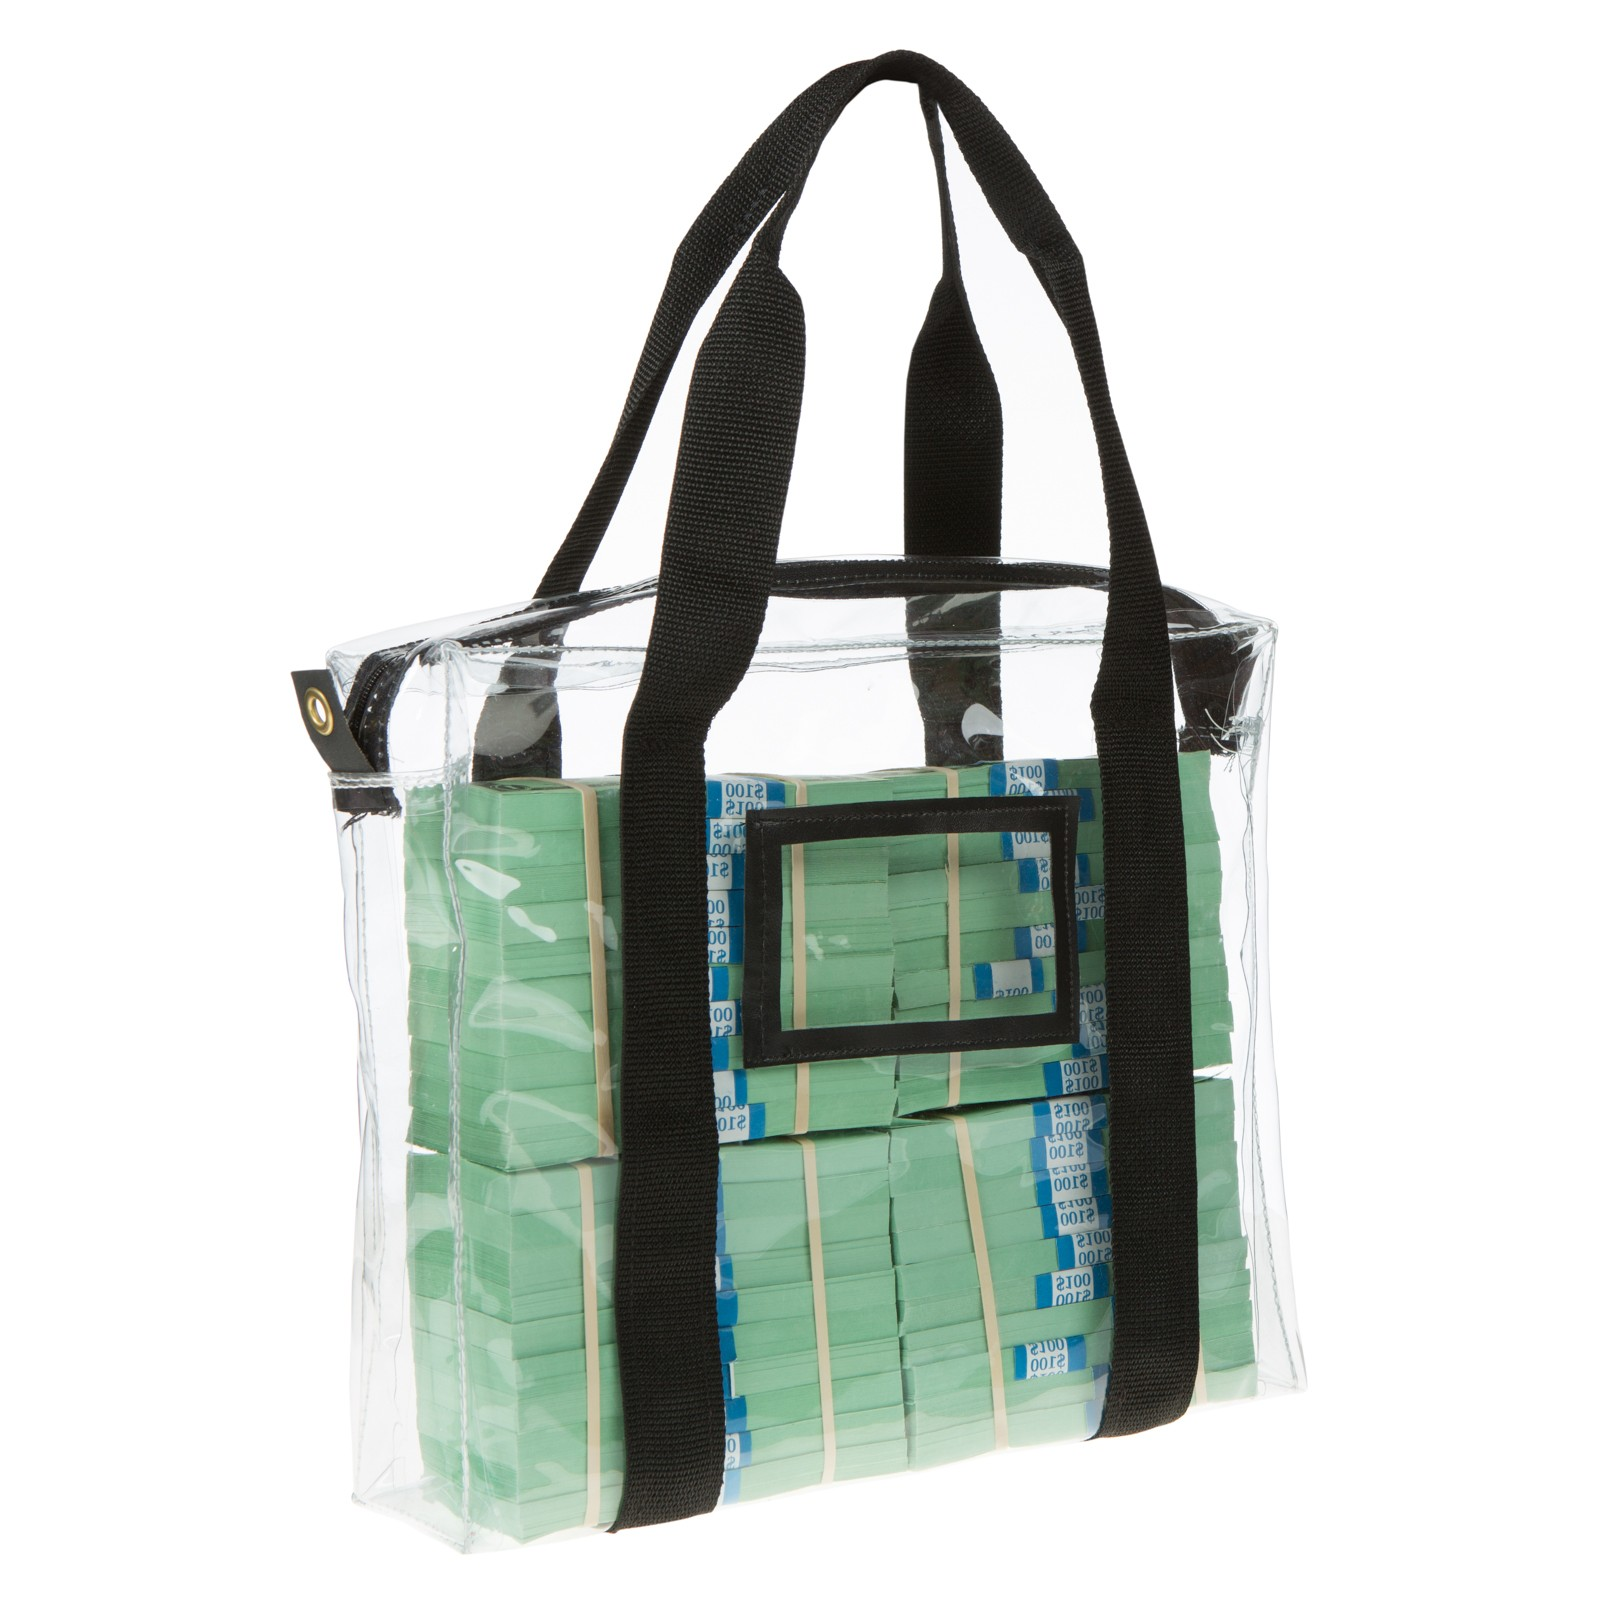 14w X 11h X 3d Clear Vinyl Bag W Handles Made To Order